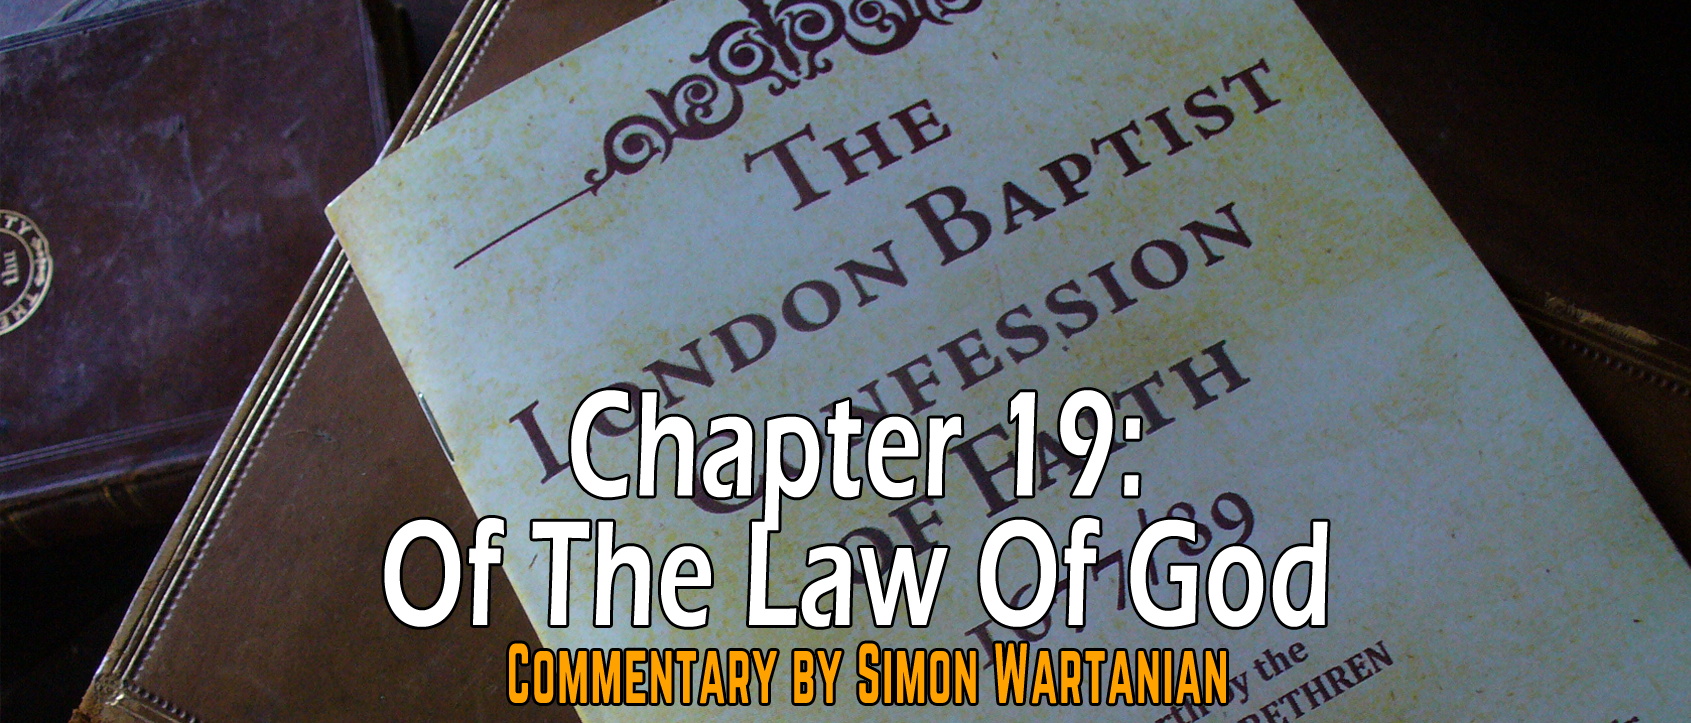 1689 Baptist Confession Chapter 19: Of the Law of God - Commentary